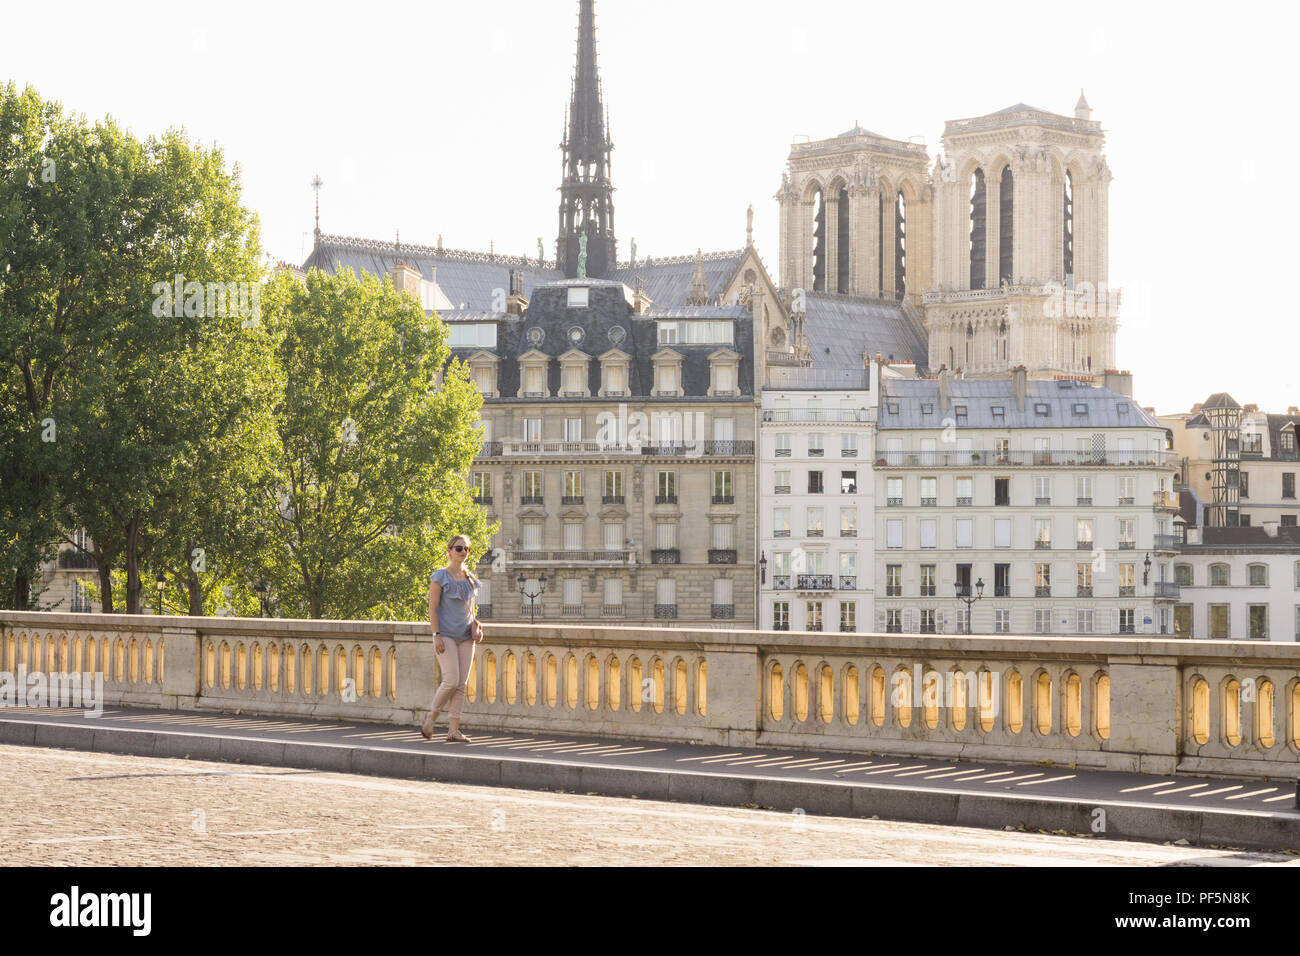 Paris cityscape - Woman walks along the Louis Philippe bridge on a late afternoon in Paris. France. - Stock Image